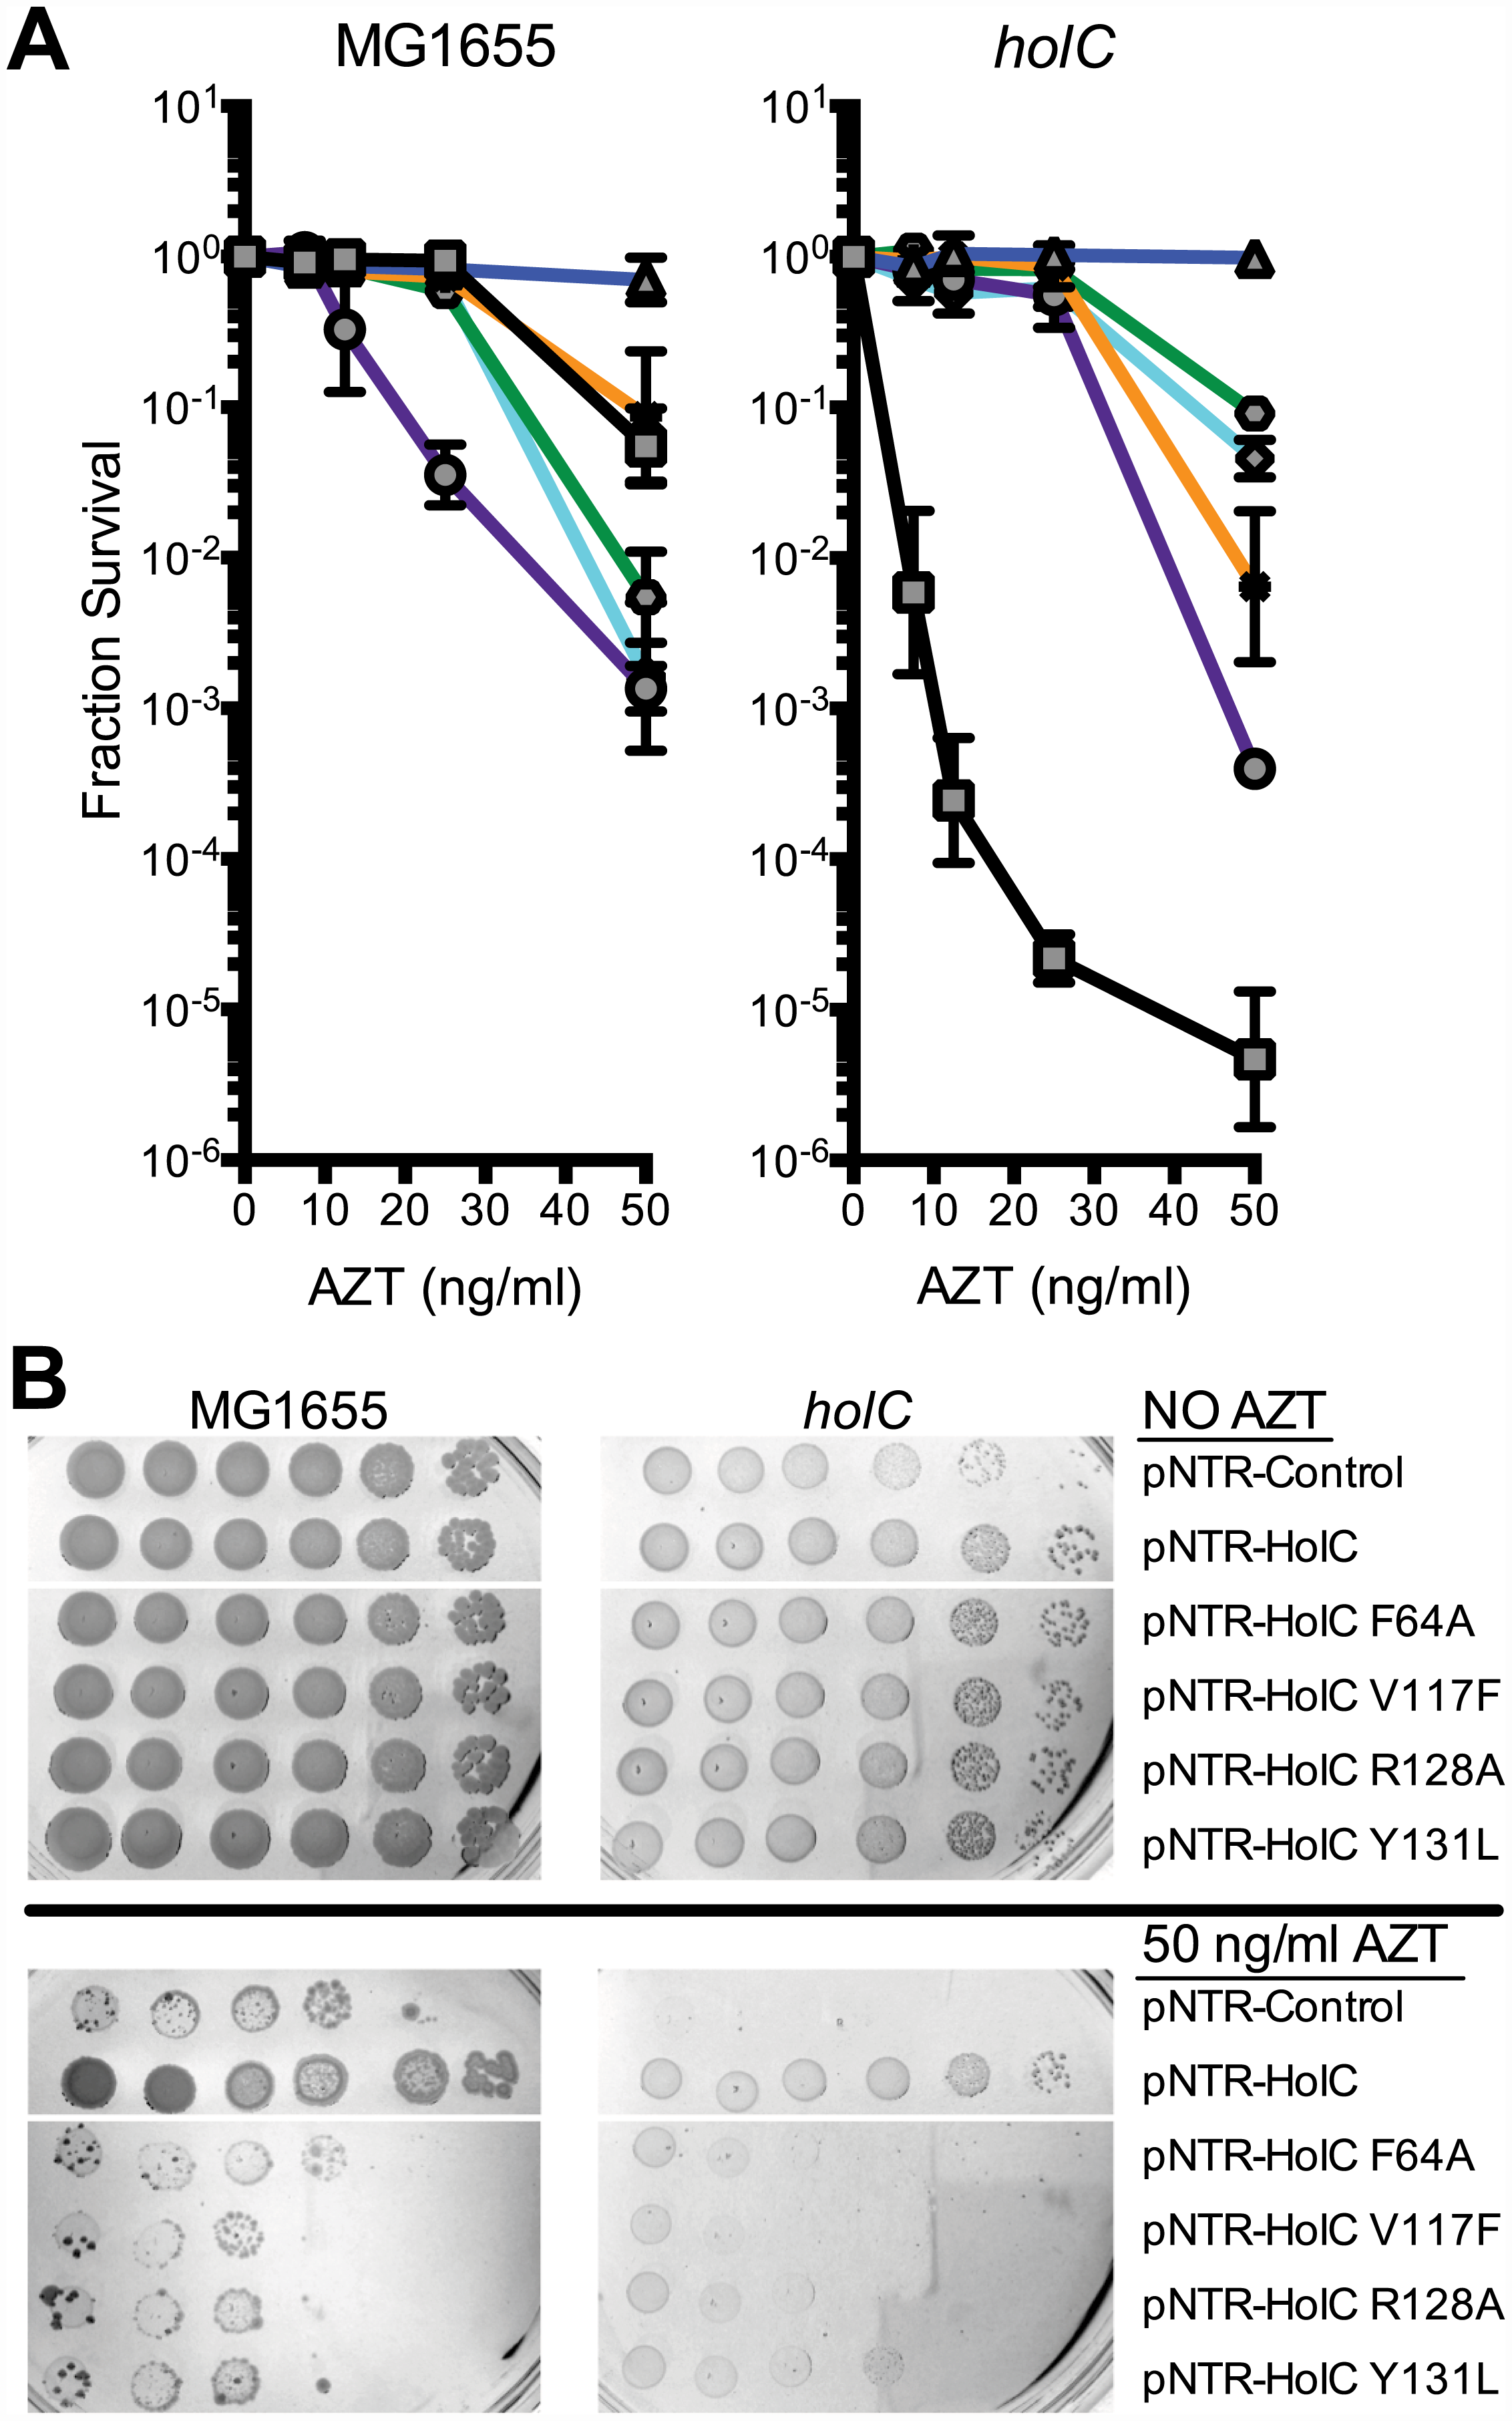 Survival to AZT of wild type and <i>holC</i> mutants expressing mutant HolC on mobile plasmids.